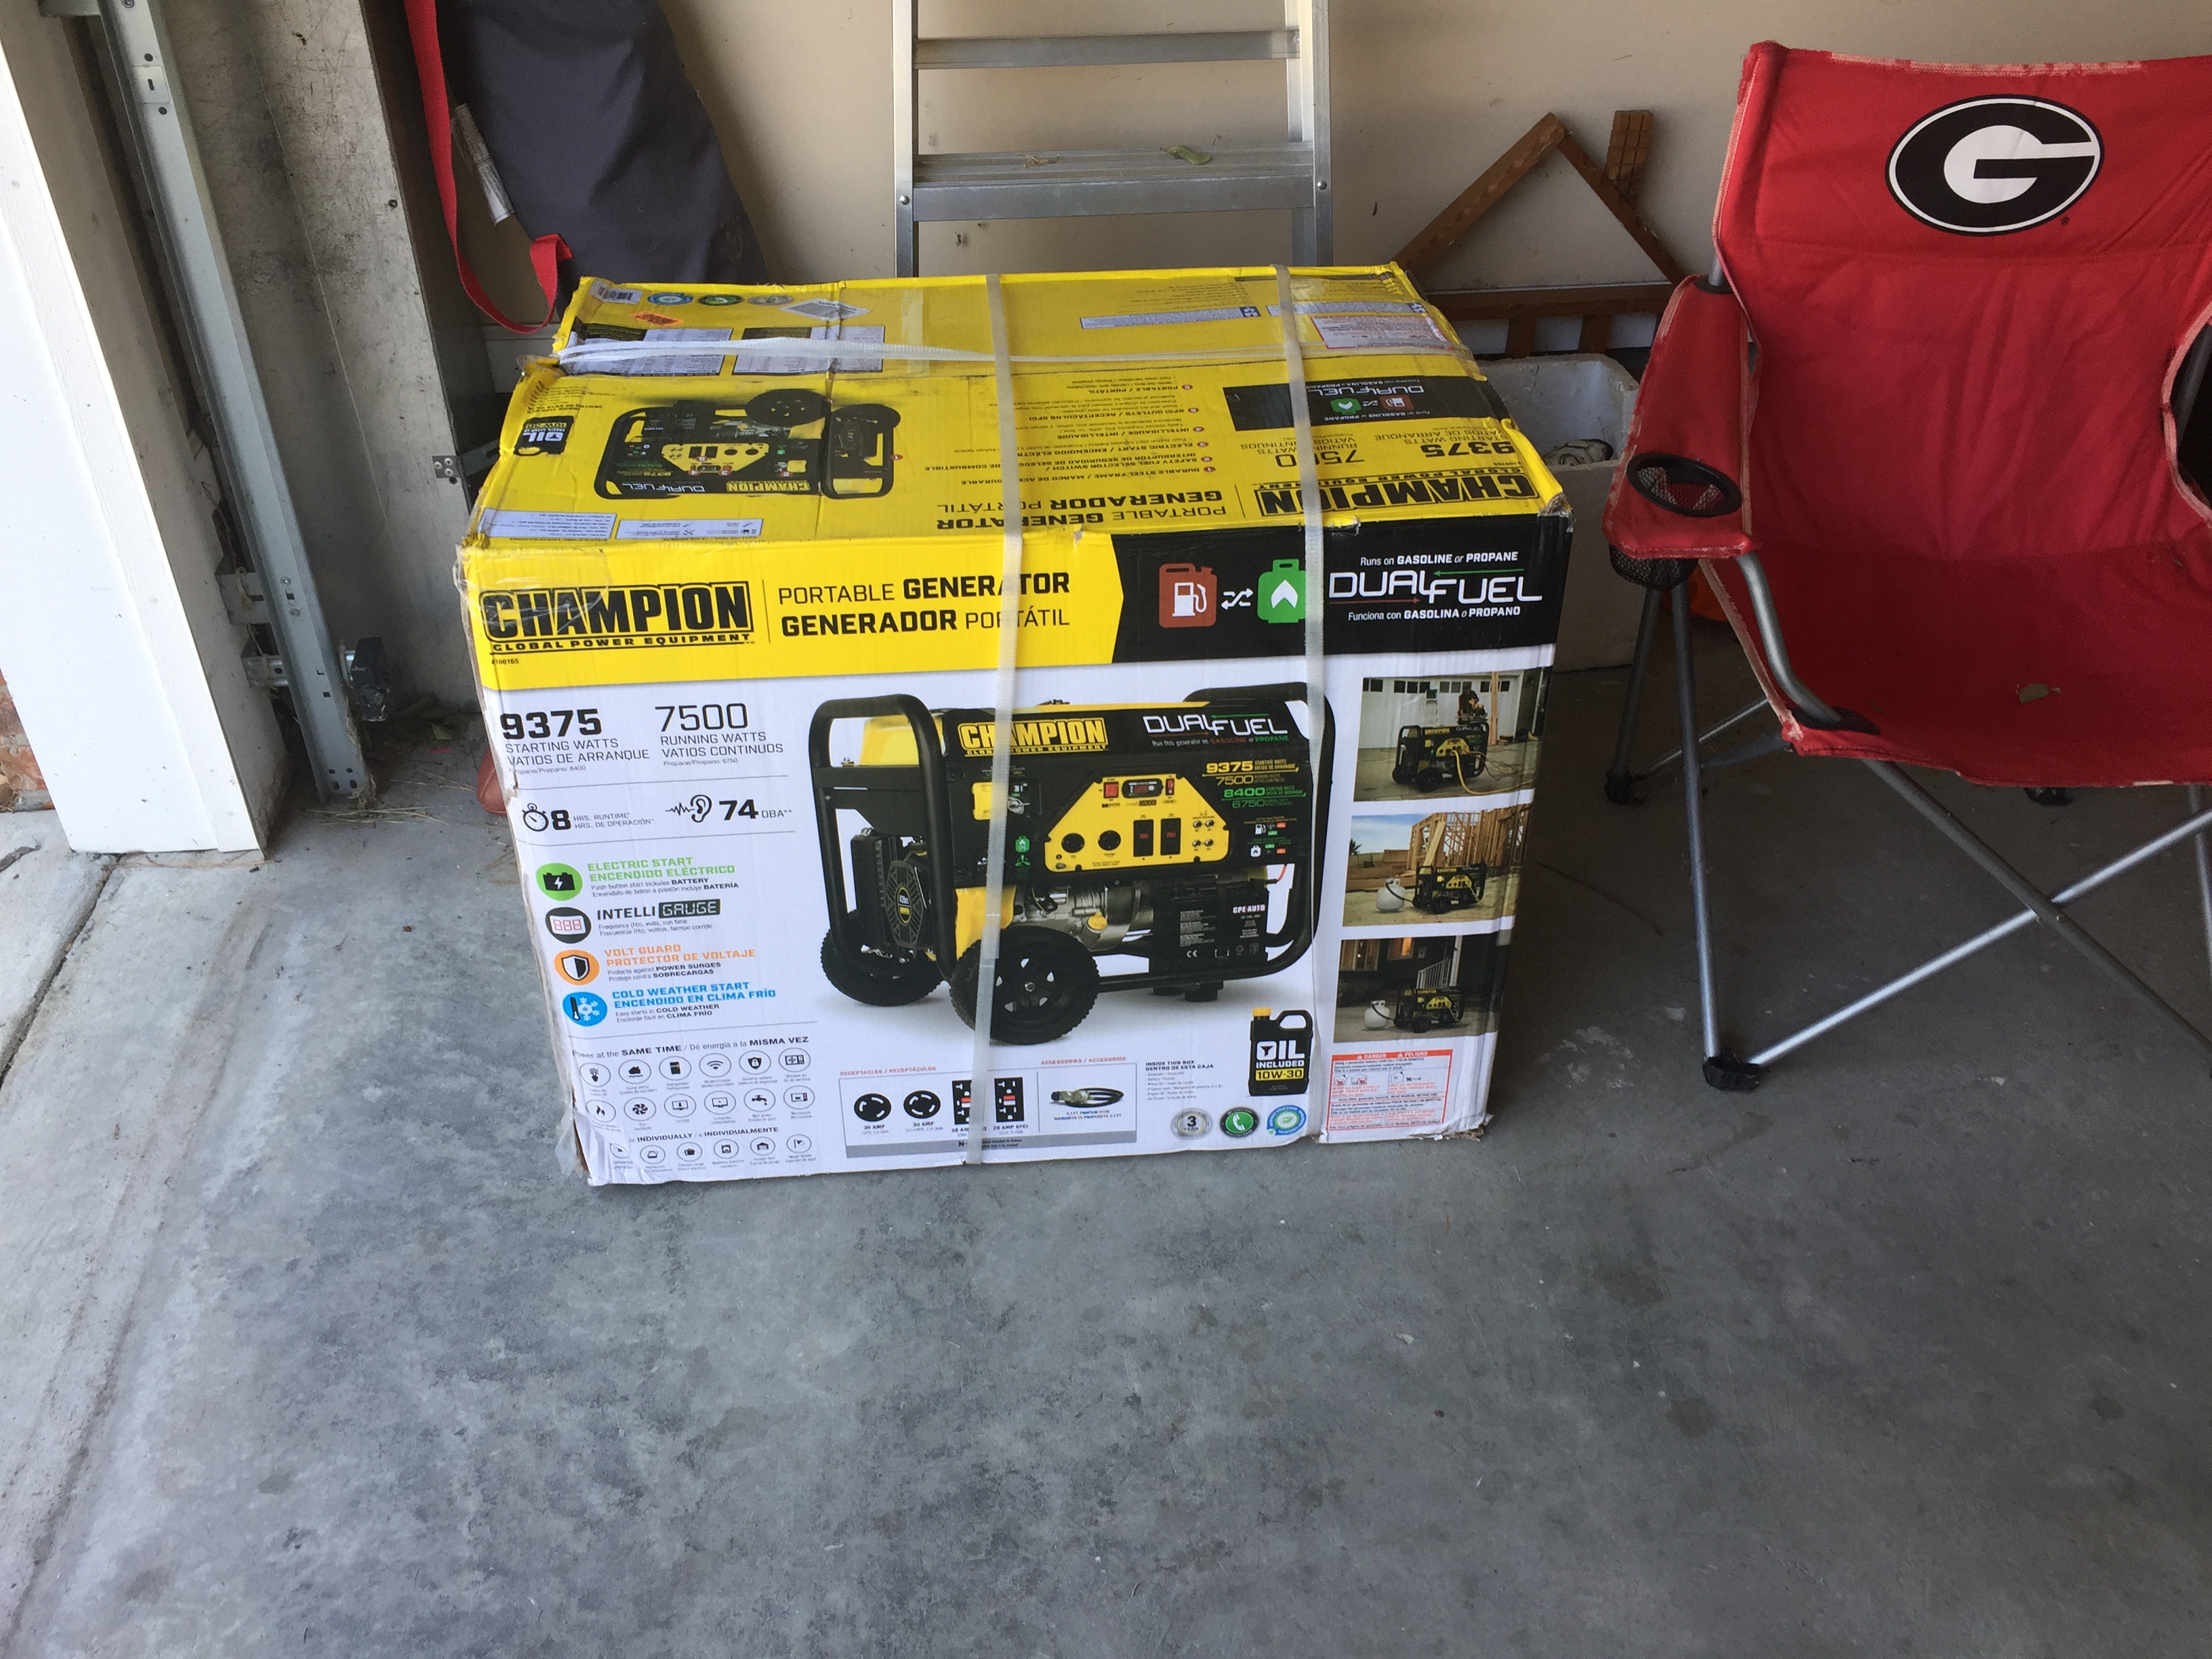 Champion Power Equipment Reviews - 13 Reviews of